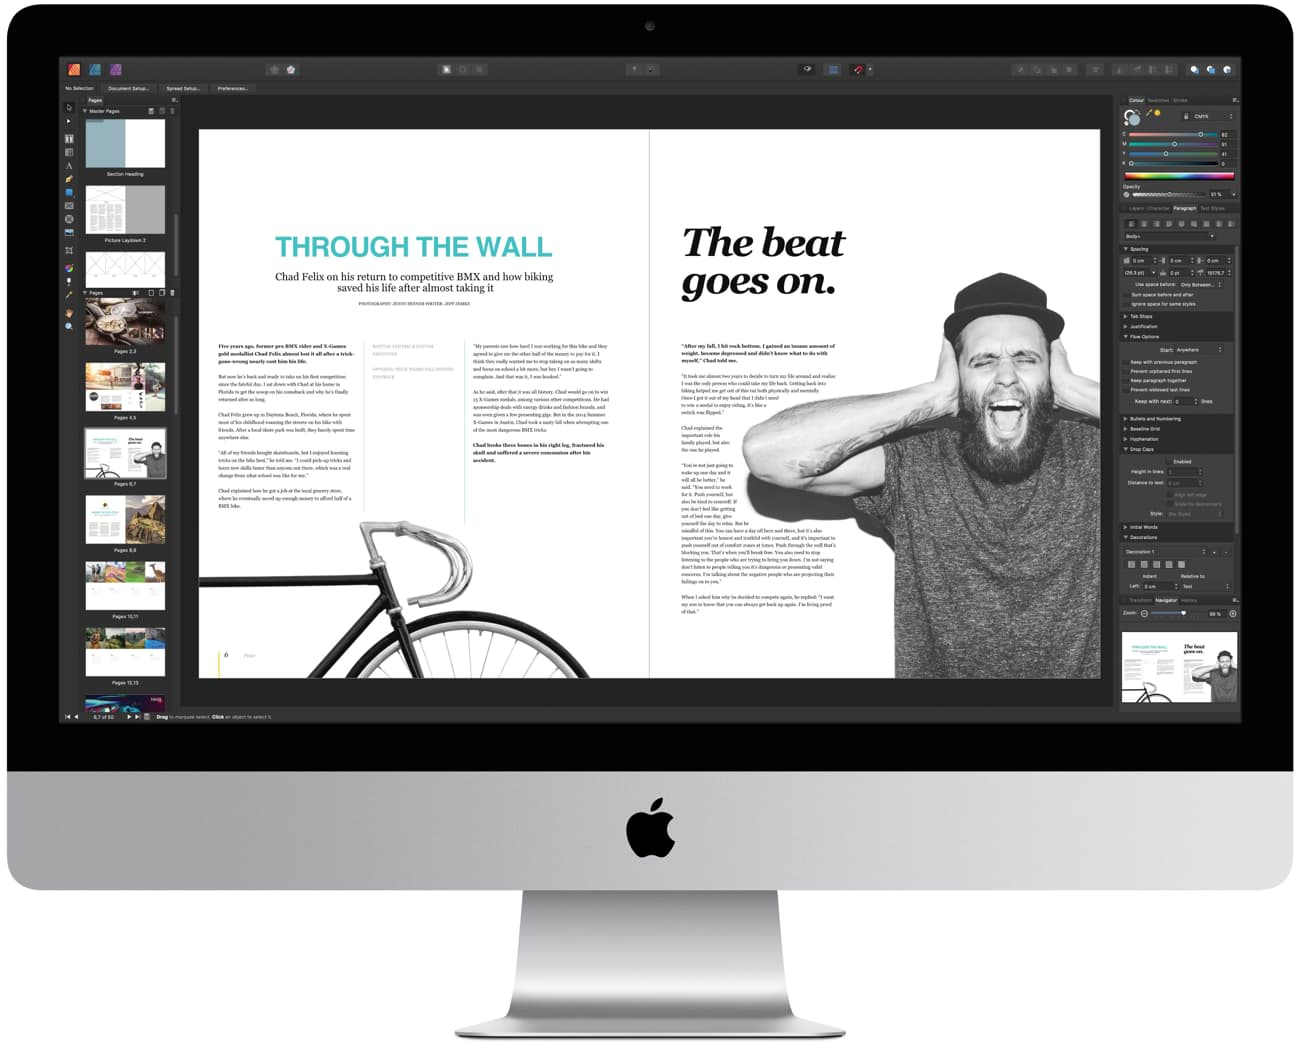 Serif launches Affinity Publisher with stunning new StudioLink technology